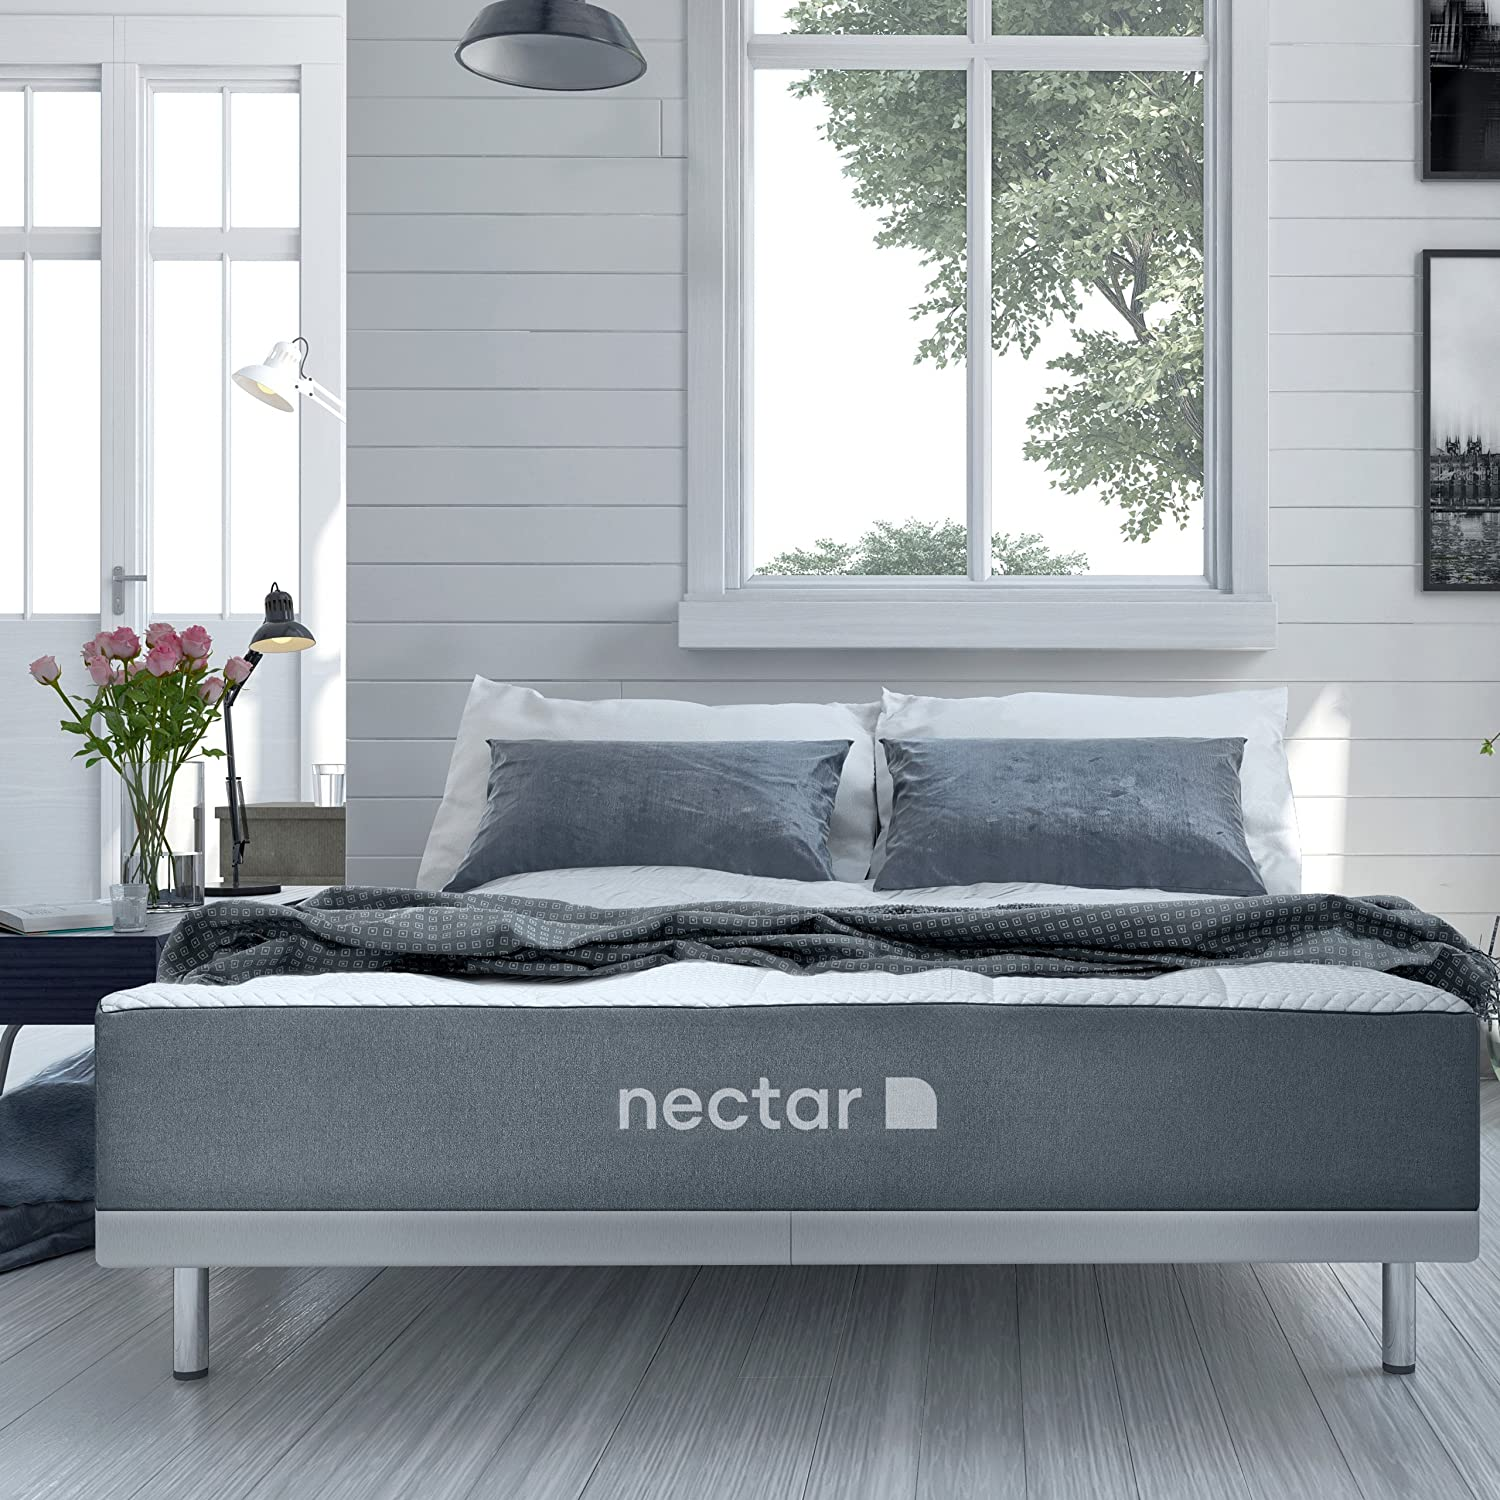 Amazon.com: Nectar Twin Mattress + 2 Free Pillows   Gel Memory Foam    CertiPUR US Certified   180 Night Home Trial   Forever Warranty: Kitchen U0026  Dining